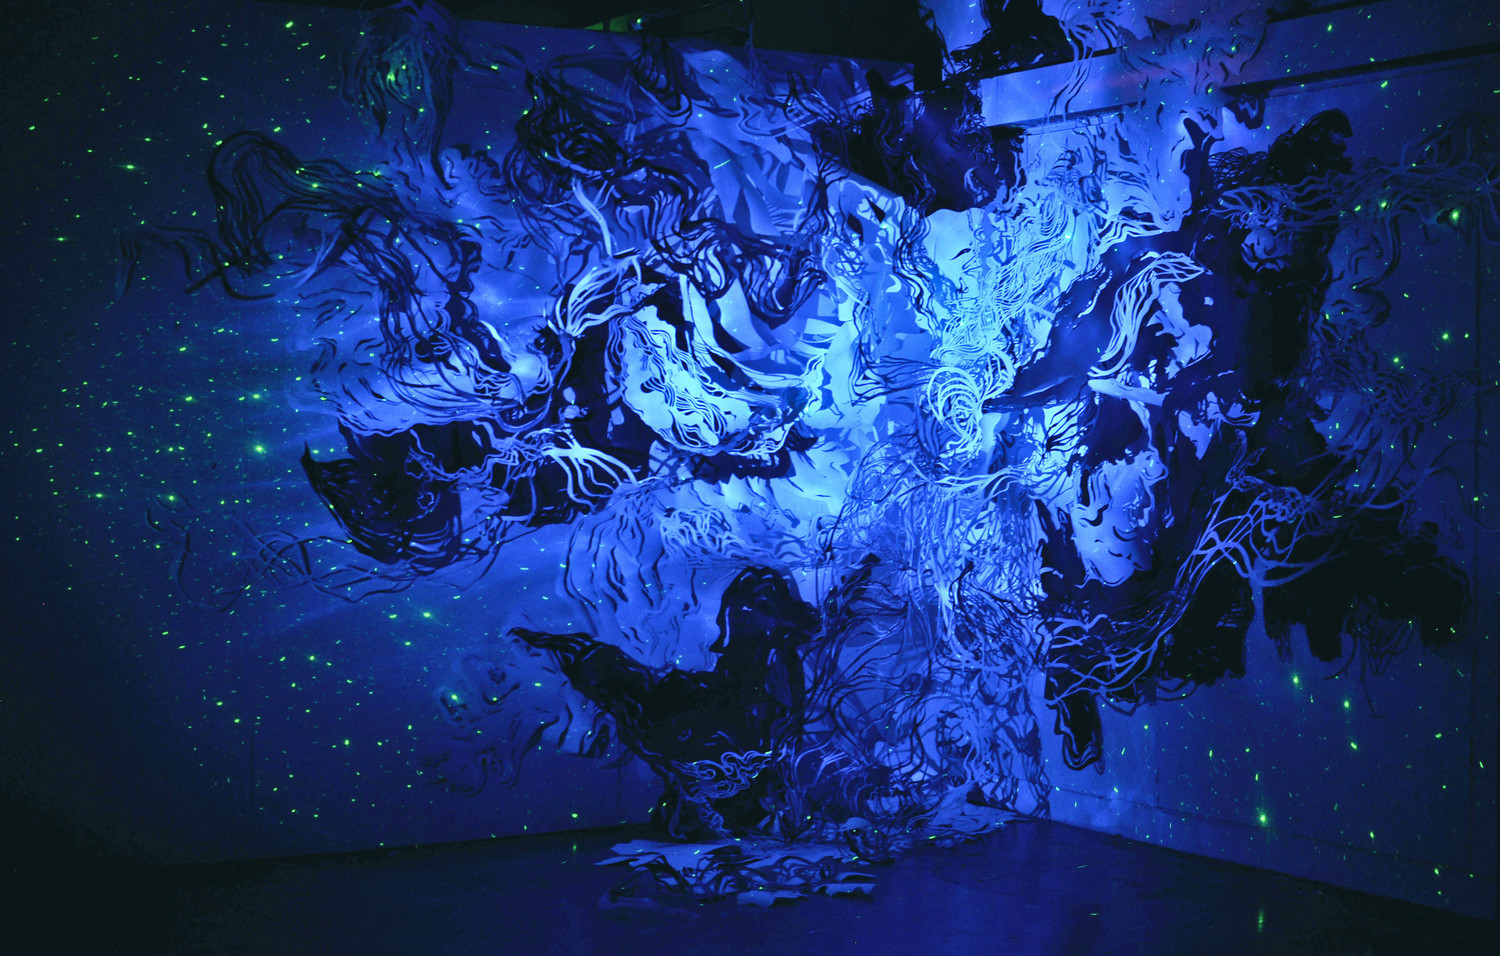 Projectile Heaven, 2012/13, hand-cut paper, sumi ink, light projections, approximately 10'x10'x10'